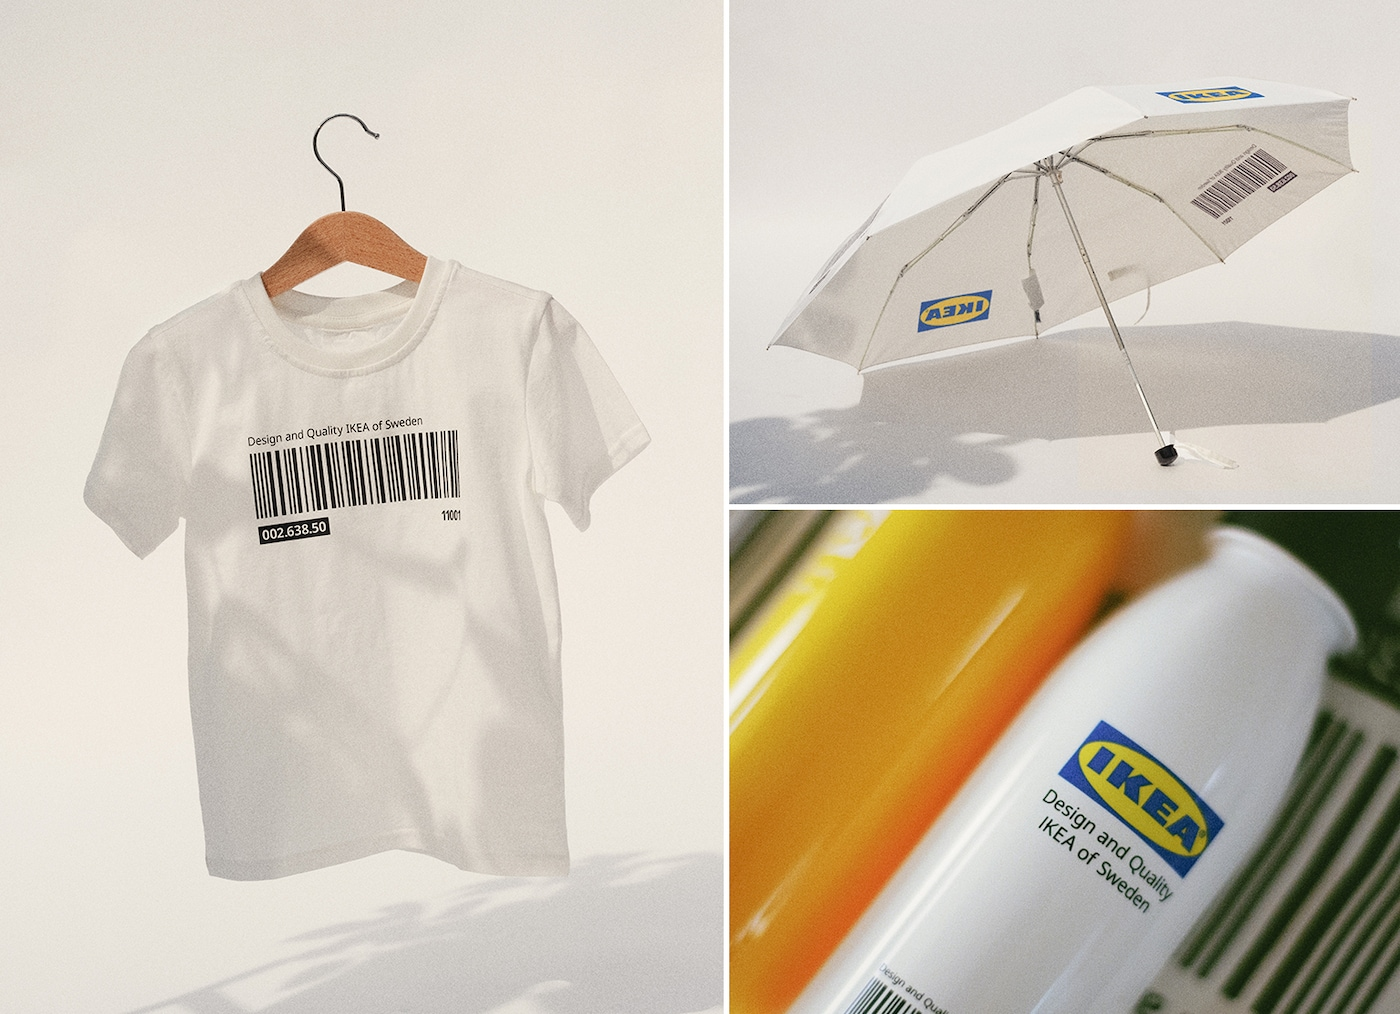 IKEA-branded everything.